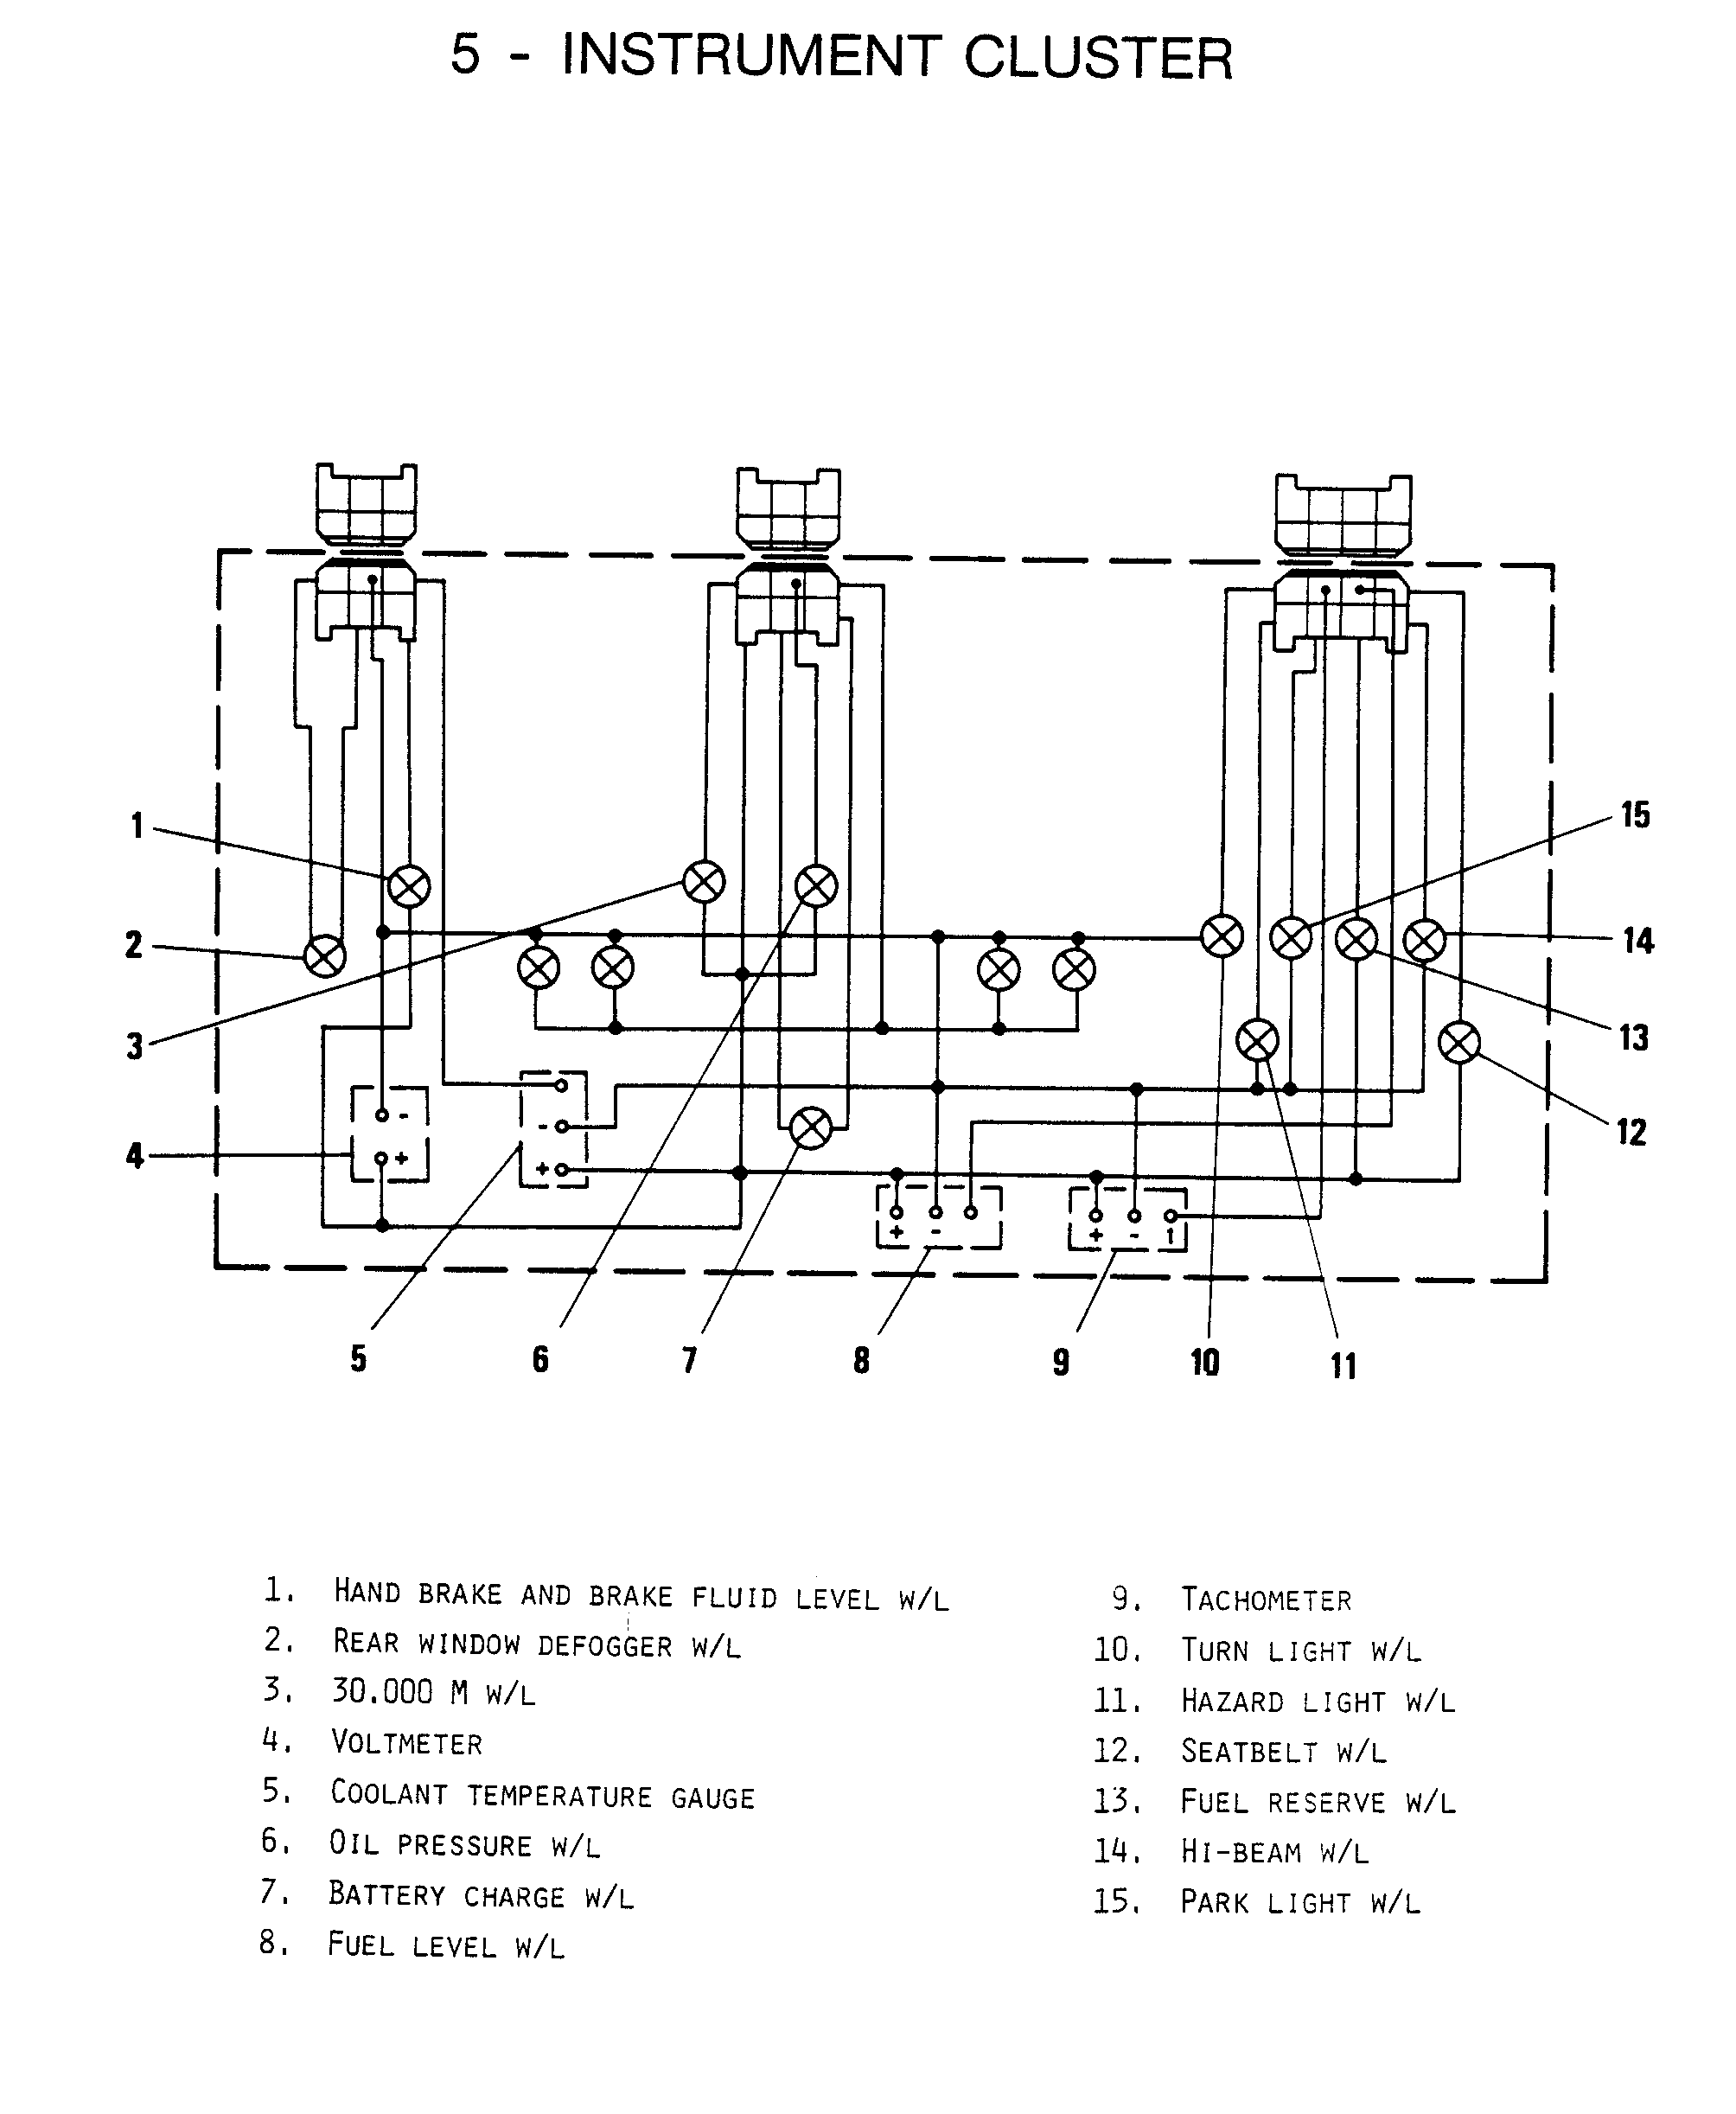 1975 911 Tach Wiring Diagram Great Design Of Jeep Porsche 1969 Auto Meter Wires Cj Tachometer